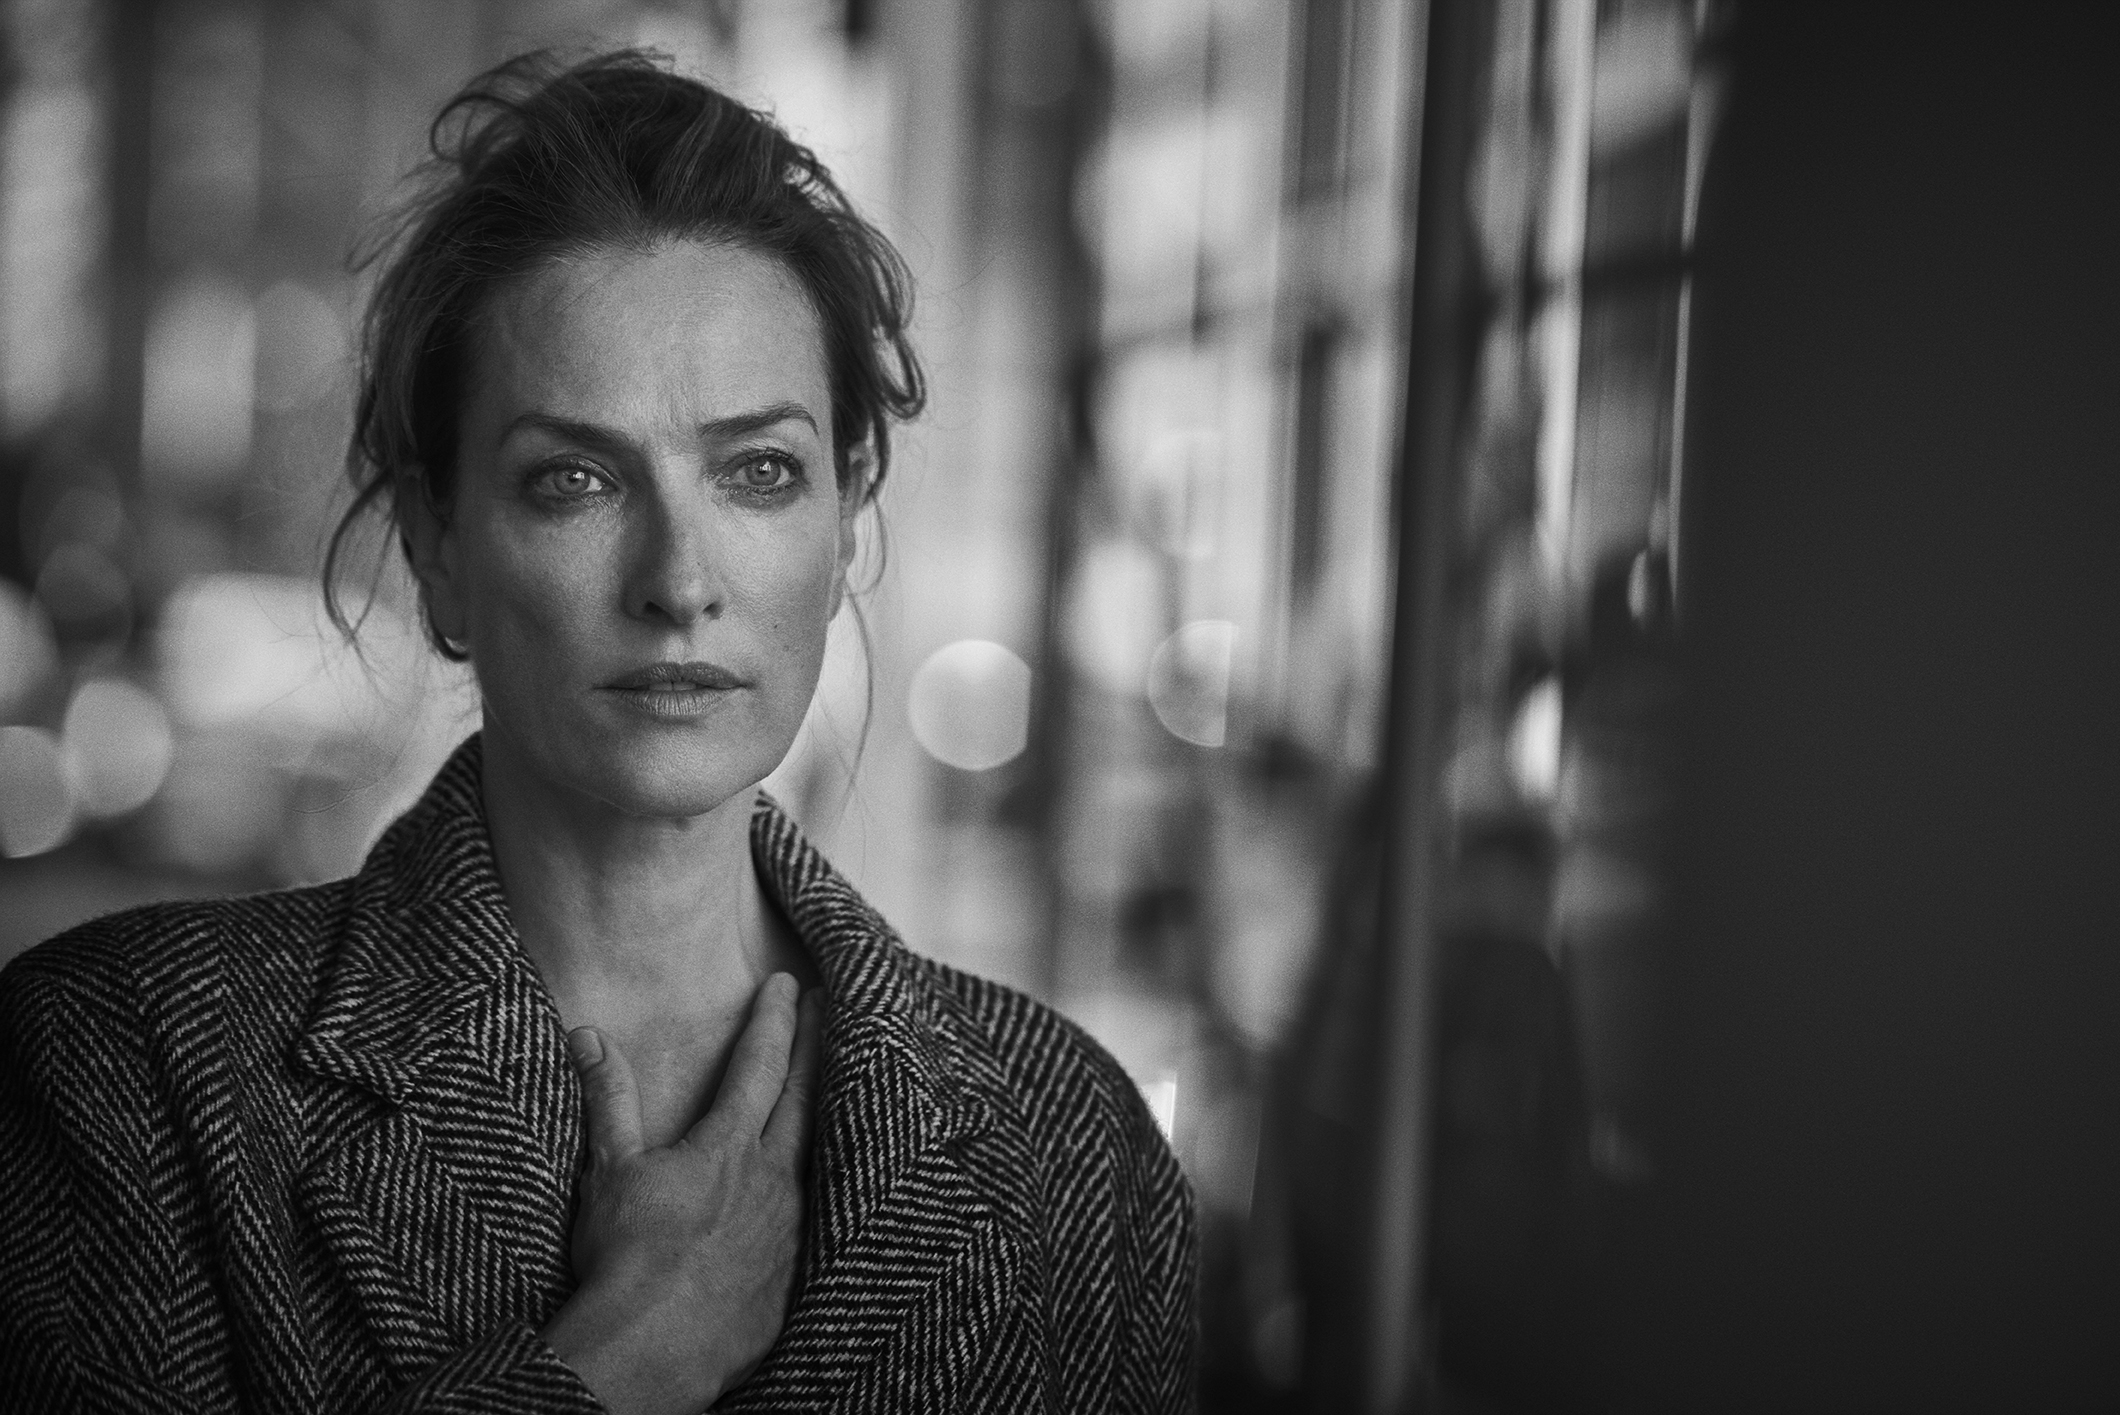 There's currently an exhibition of Peter Lindbergh's work at the ...